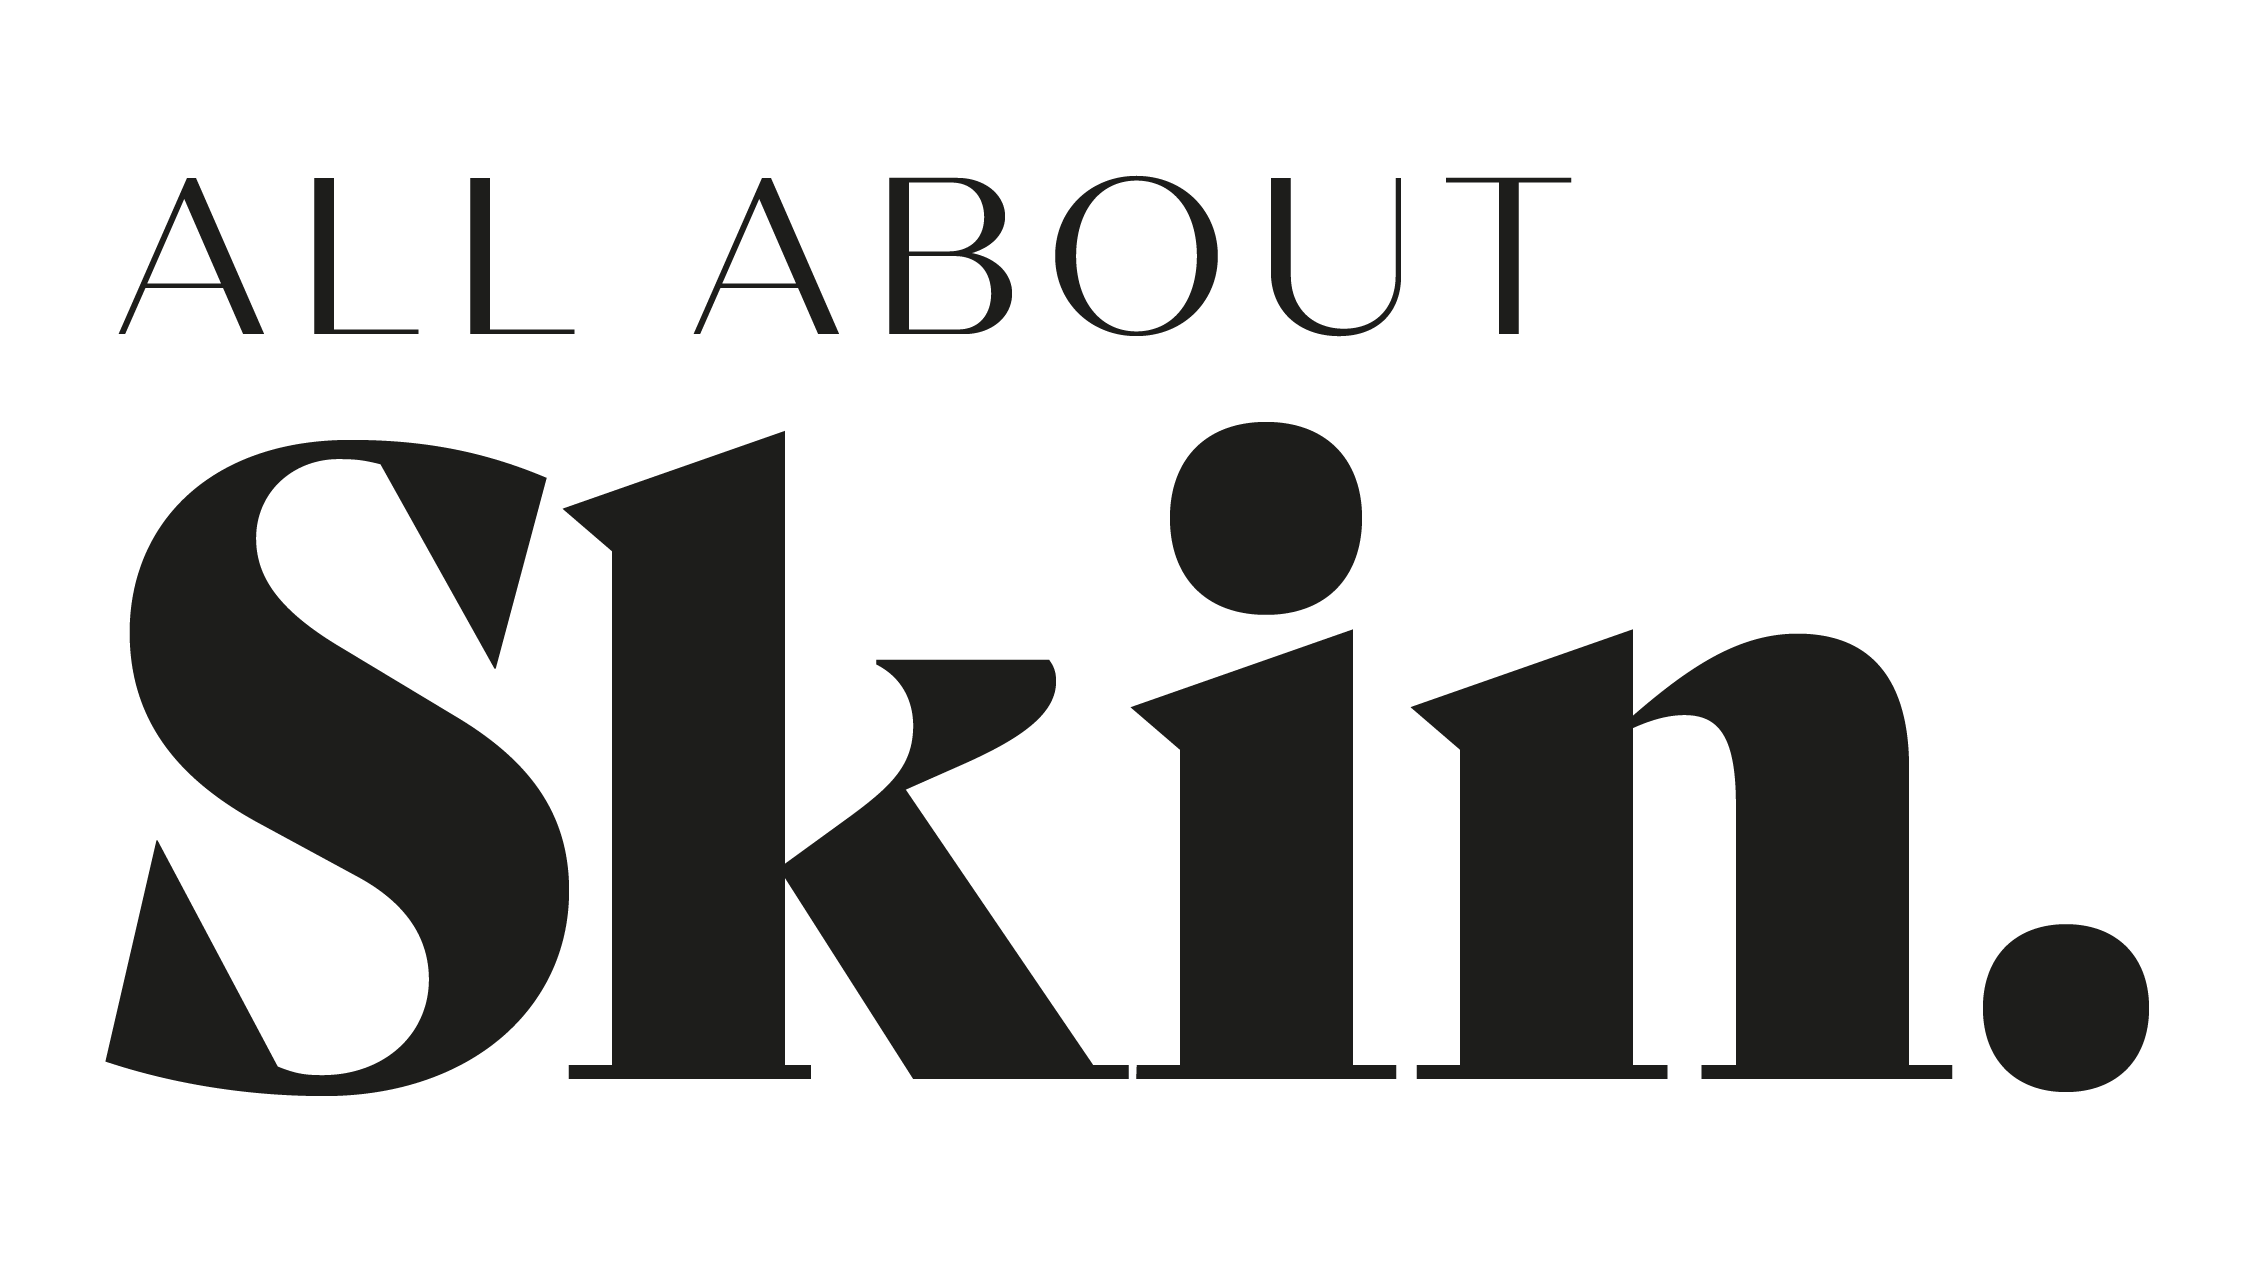 All About Skin Studio.